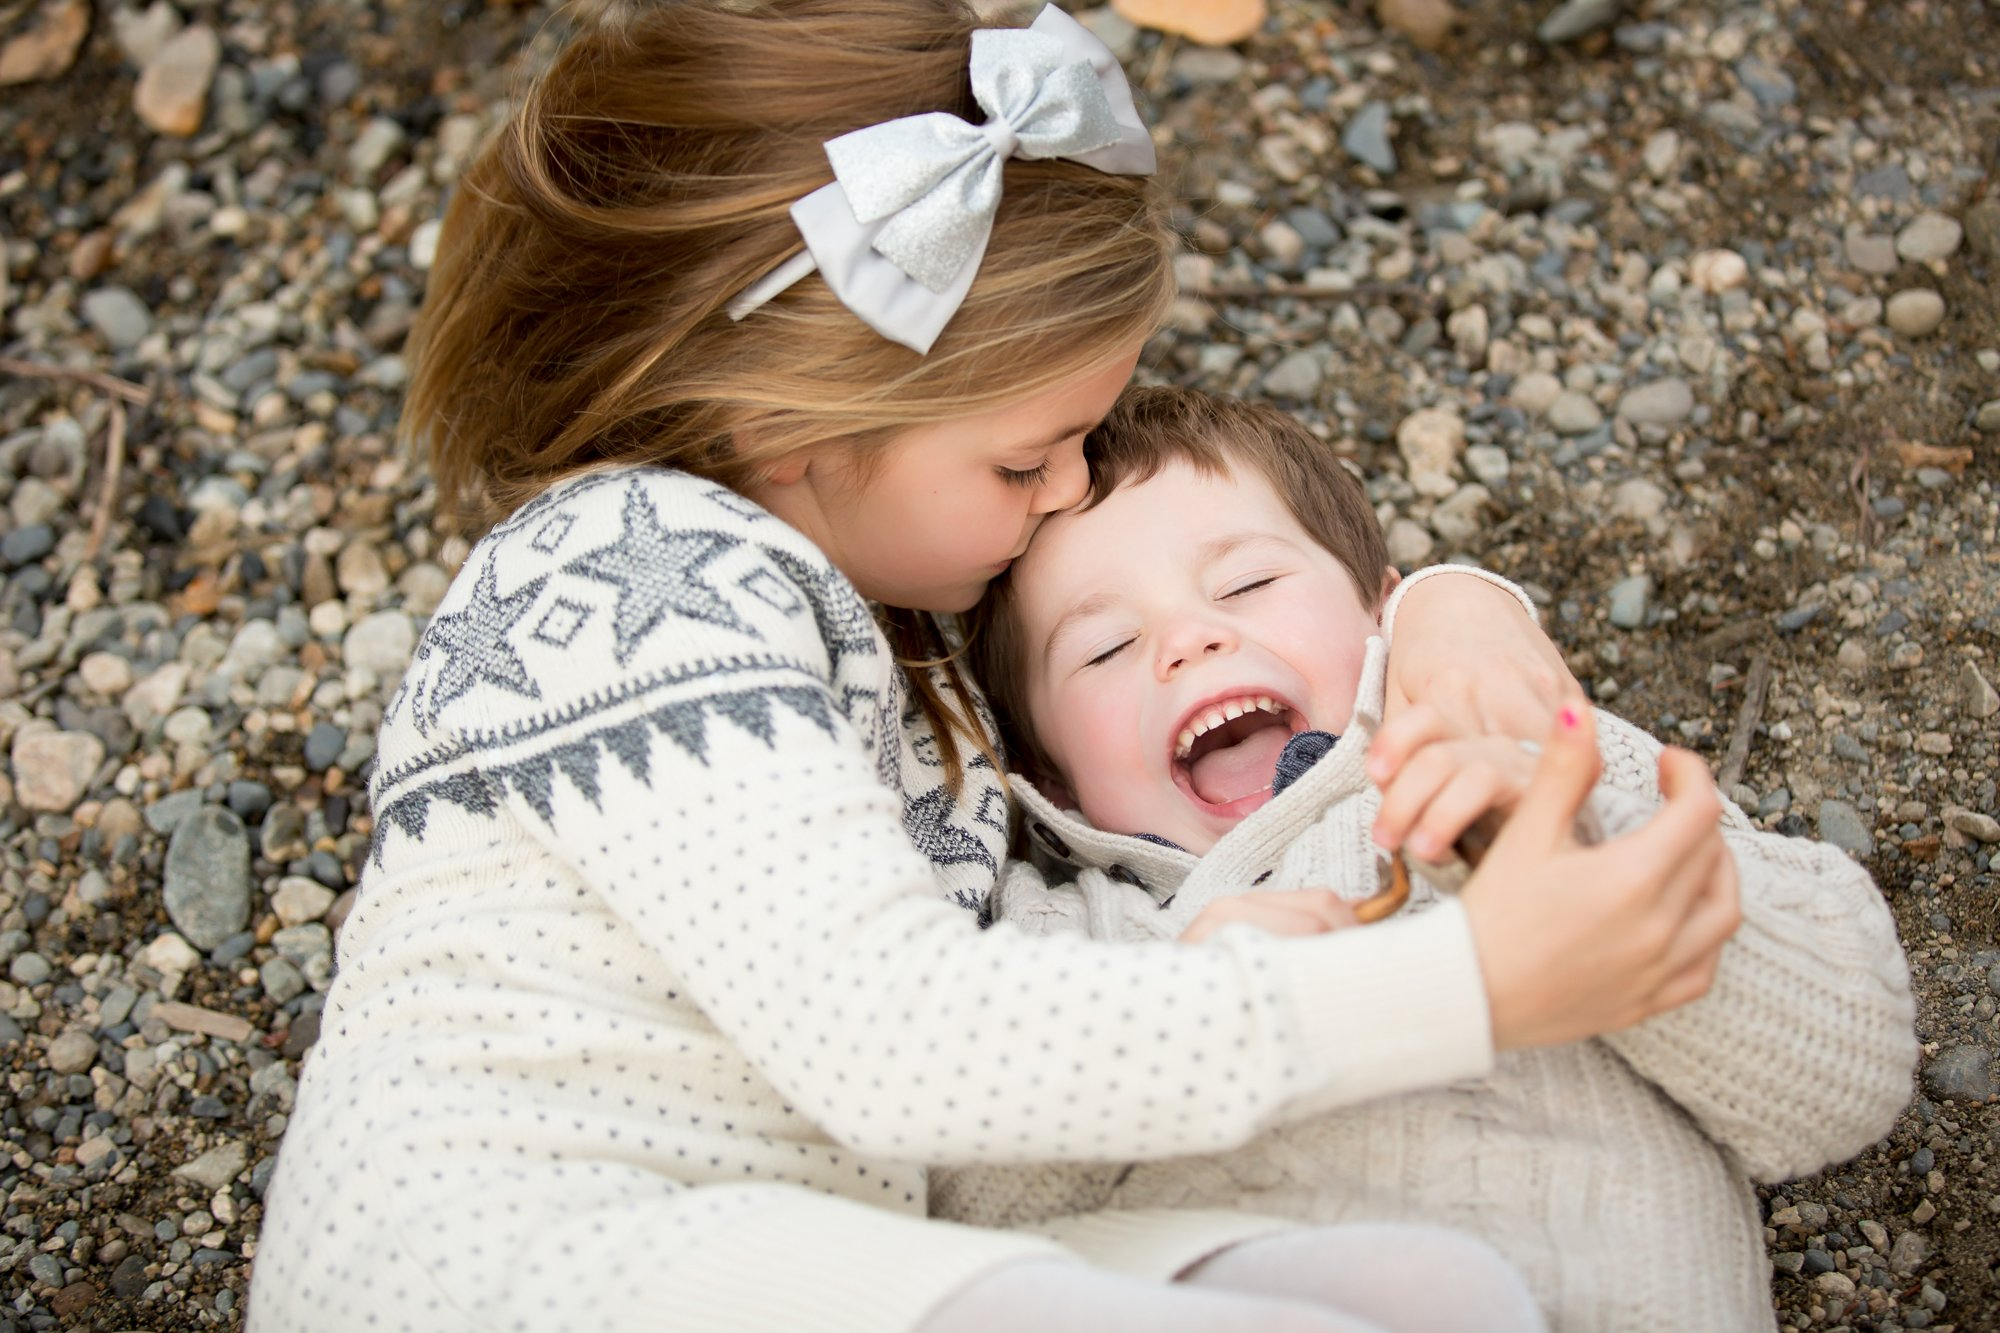 A brother and sister laying on the ground laughing